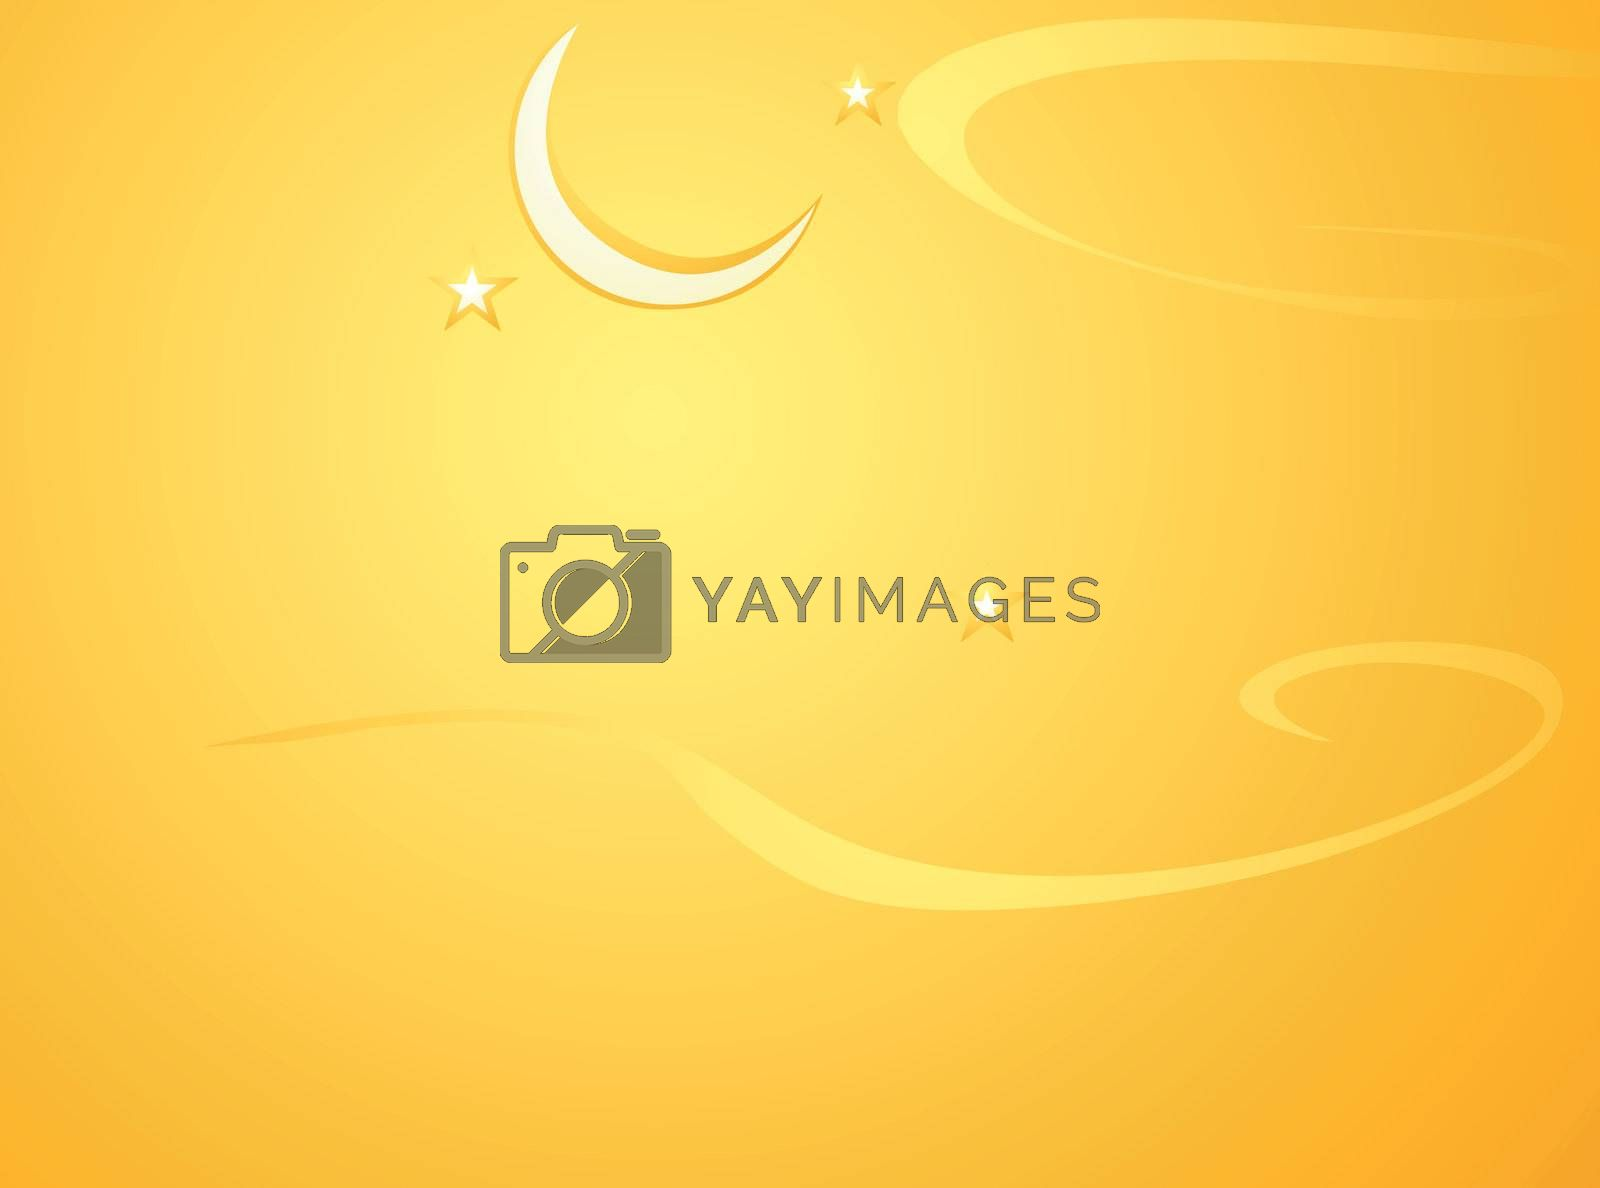 Softly orange colored desktop background, halloween themed with crescent moon.